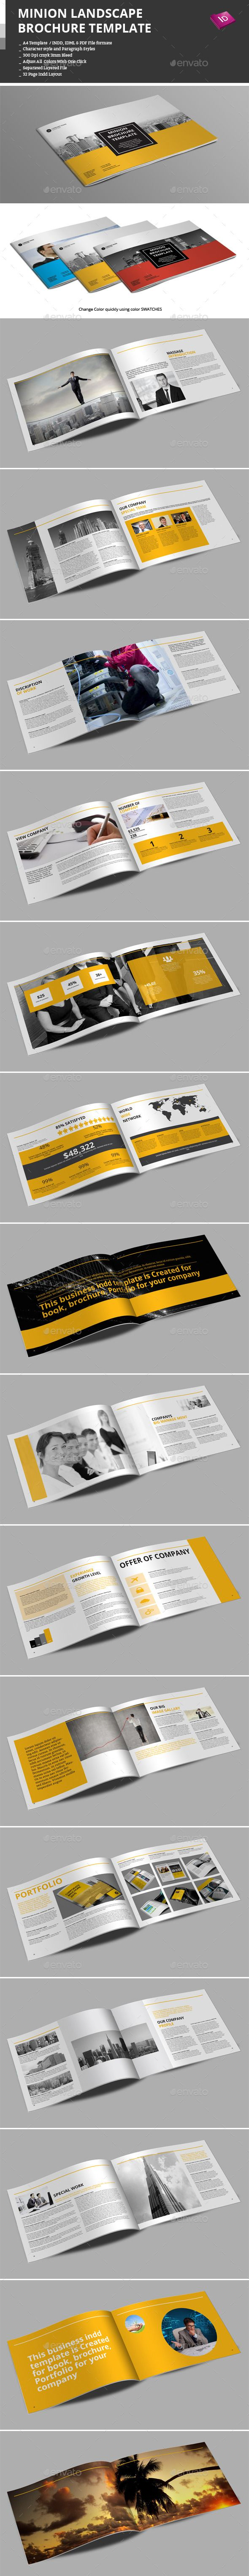 113 best brochure design images on pinterest brochure design